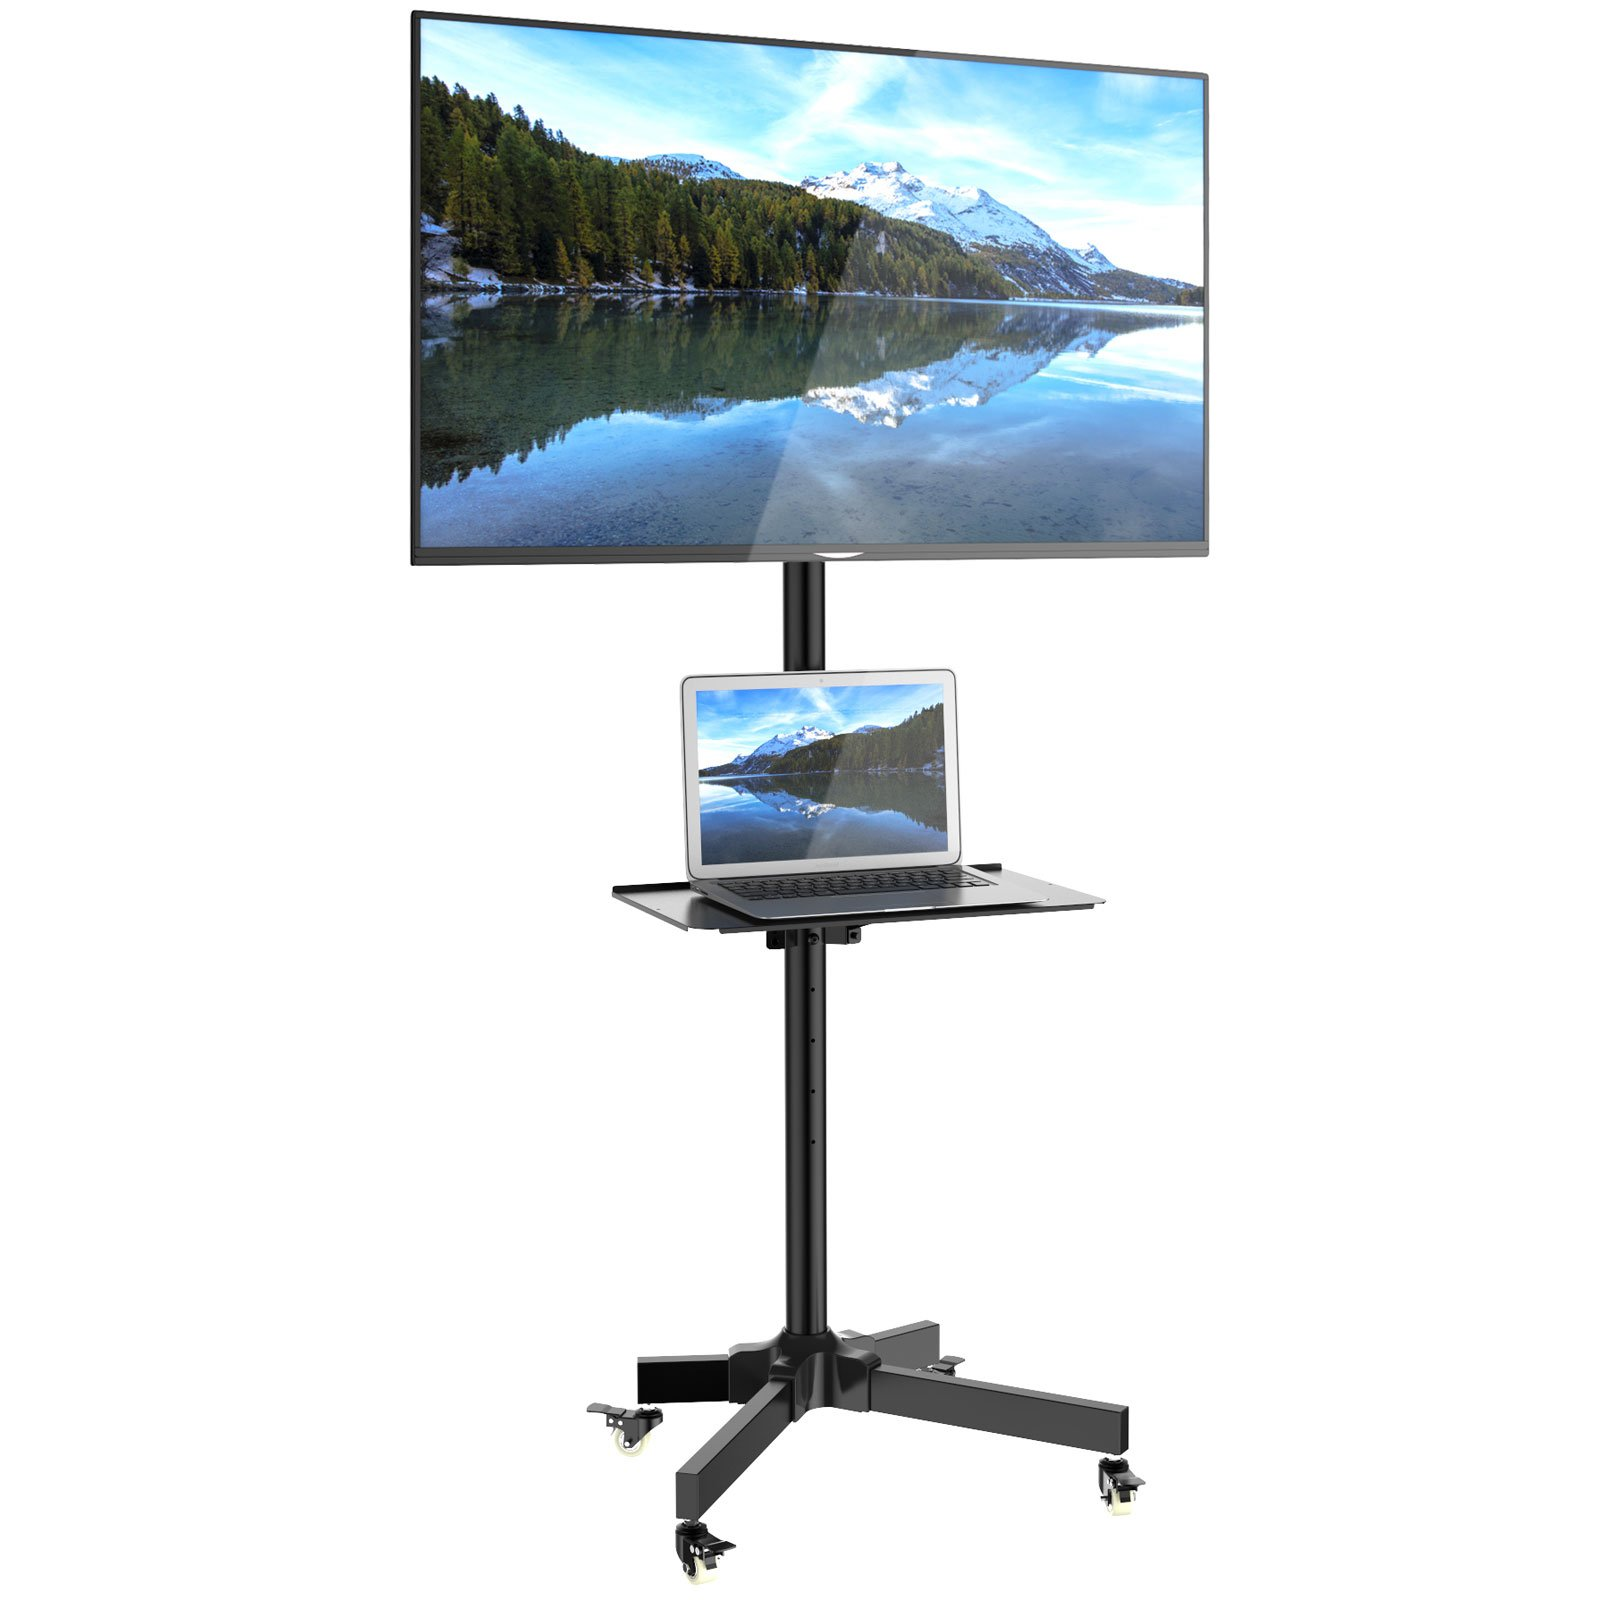 1homefurnit Mobile TV Cart Floor Stand Mount Home Display Trolley for 23''-55'' Plasma/LCD/LED with Locking Wheels